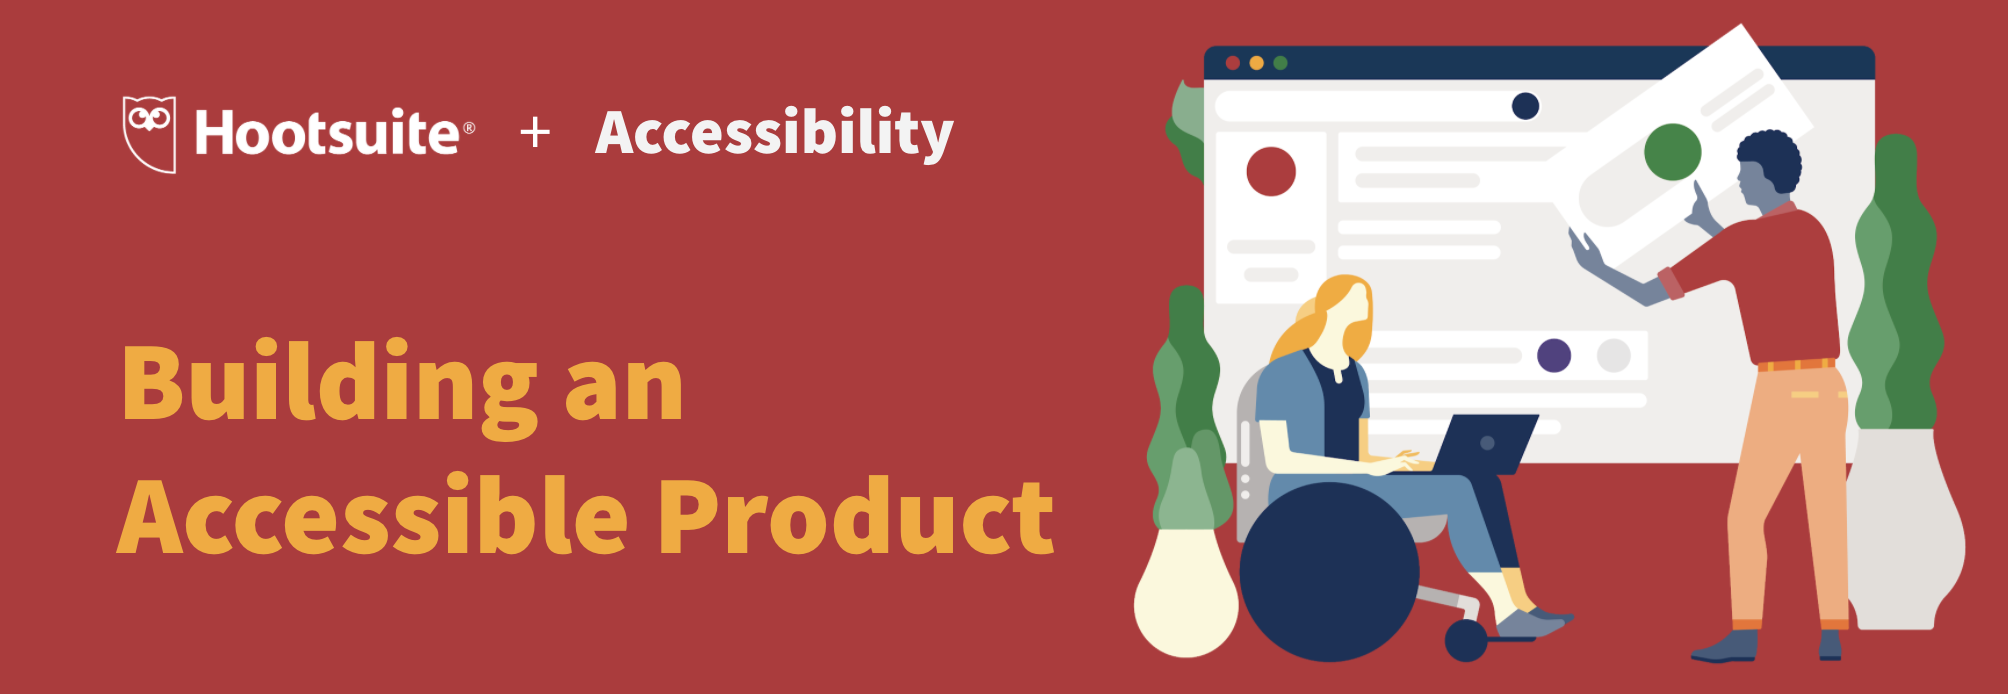 Building an Accessible Product